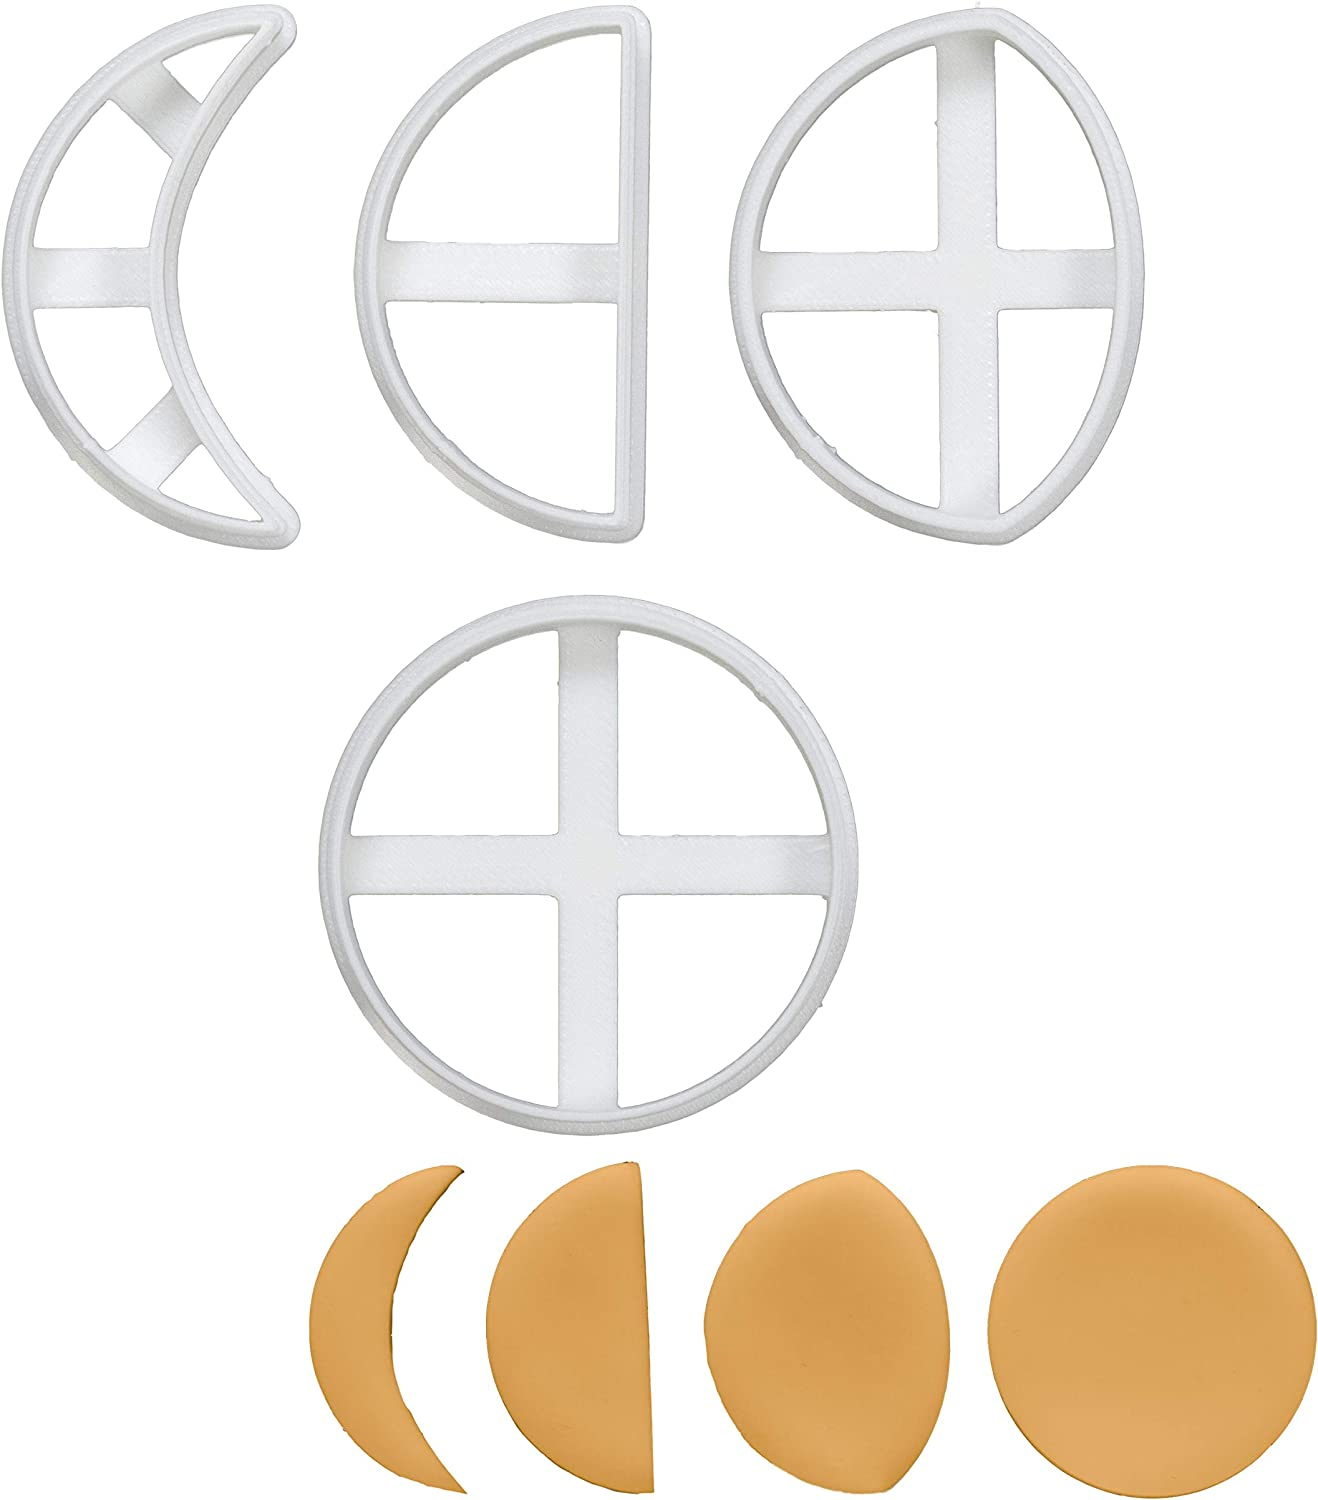 Set of 4 Moon Cycle cookie cutters (Designs: Crescent Moon, Quarter Moon, Gibbous Moon, & Full Moon), 4 pieces - Bakerlogy